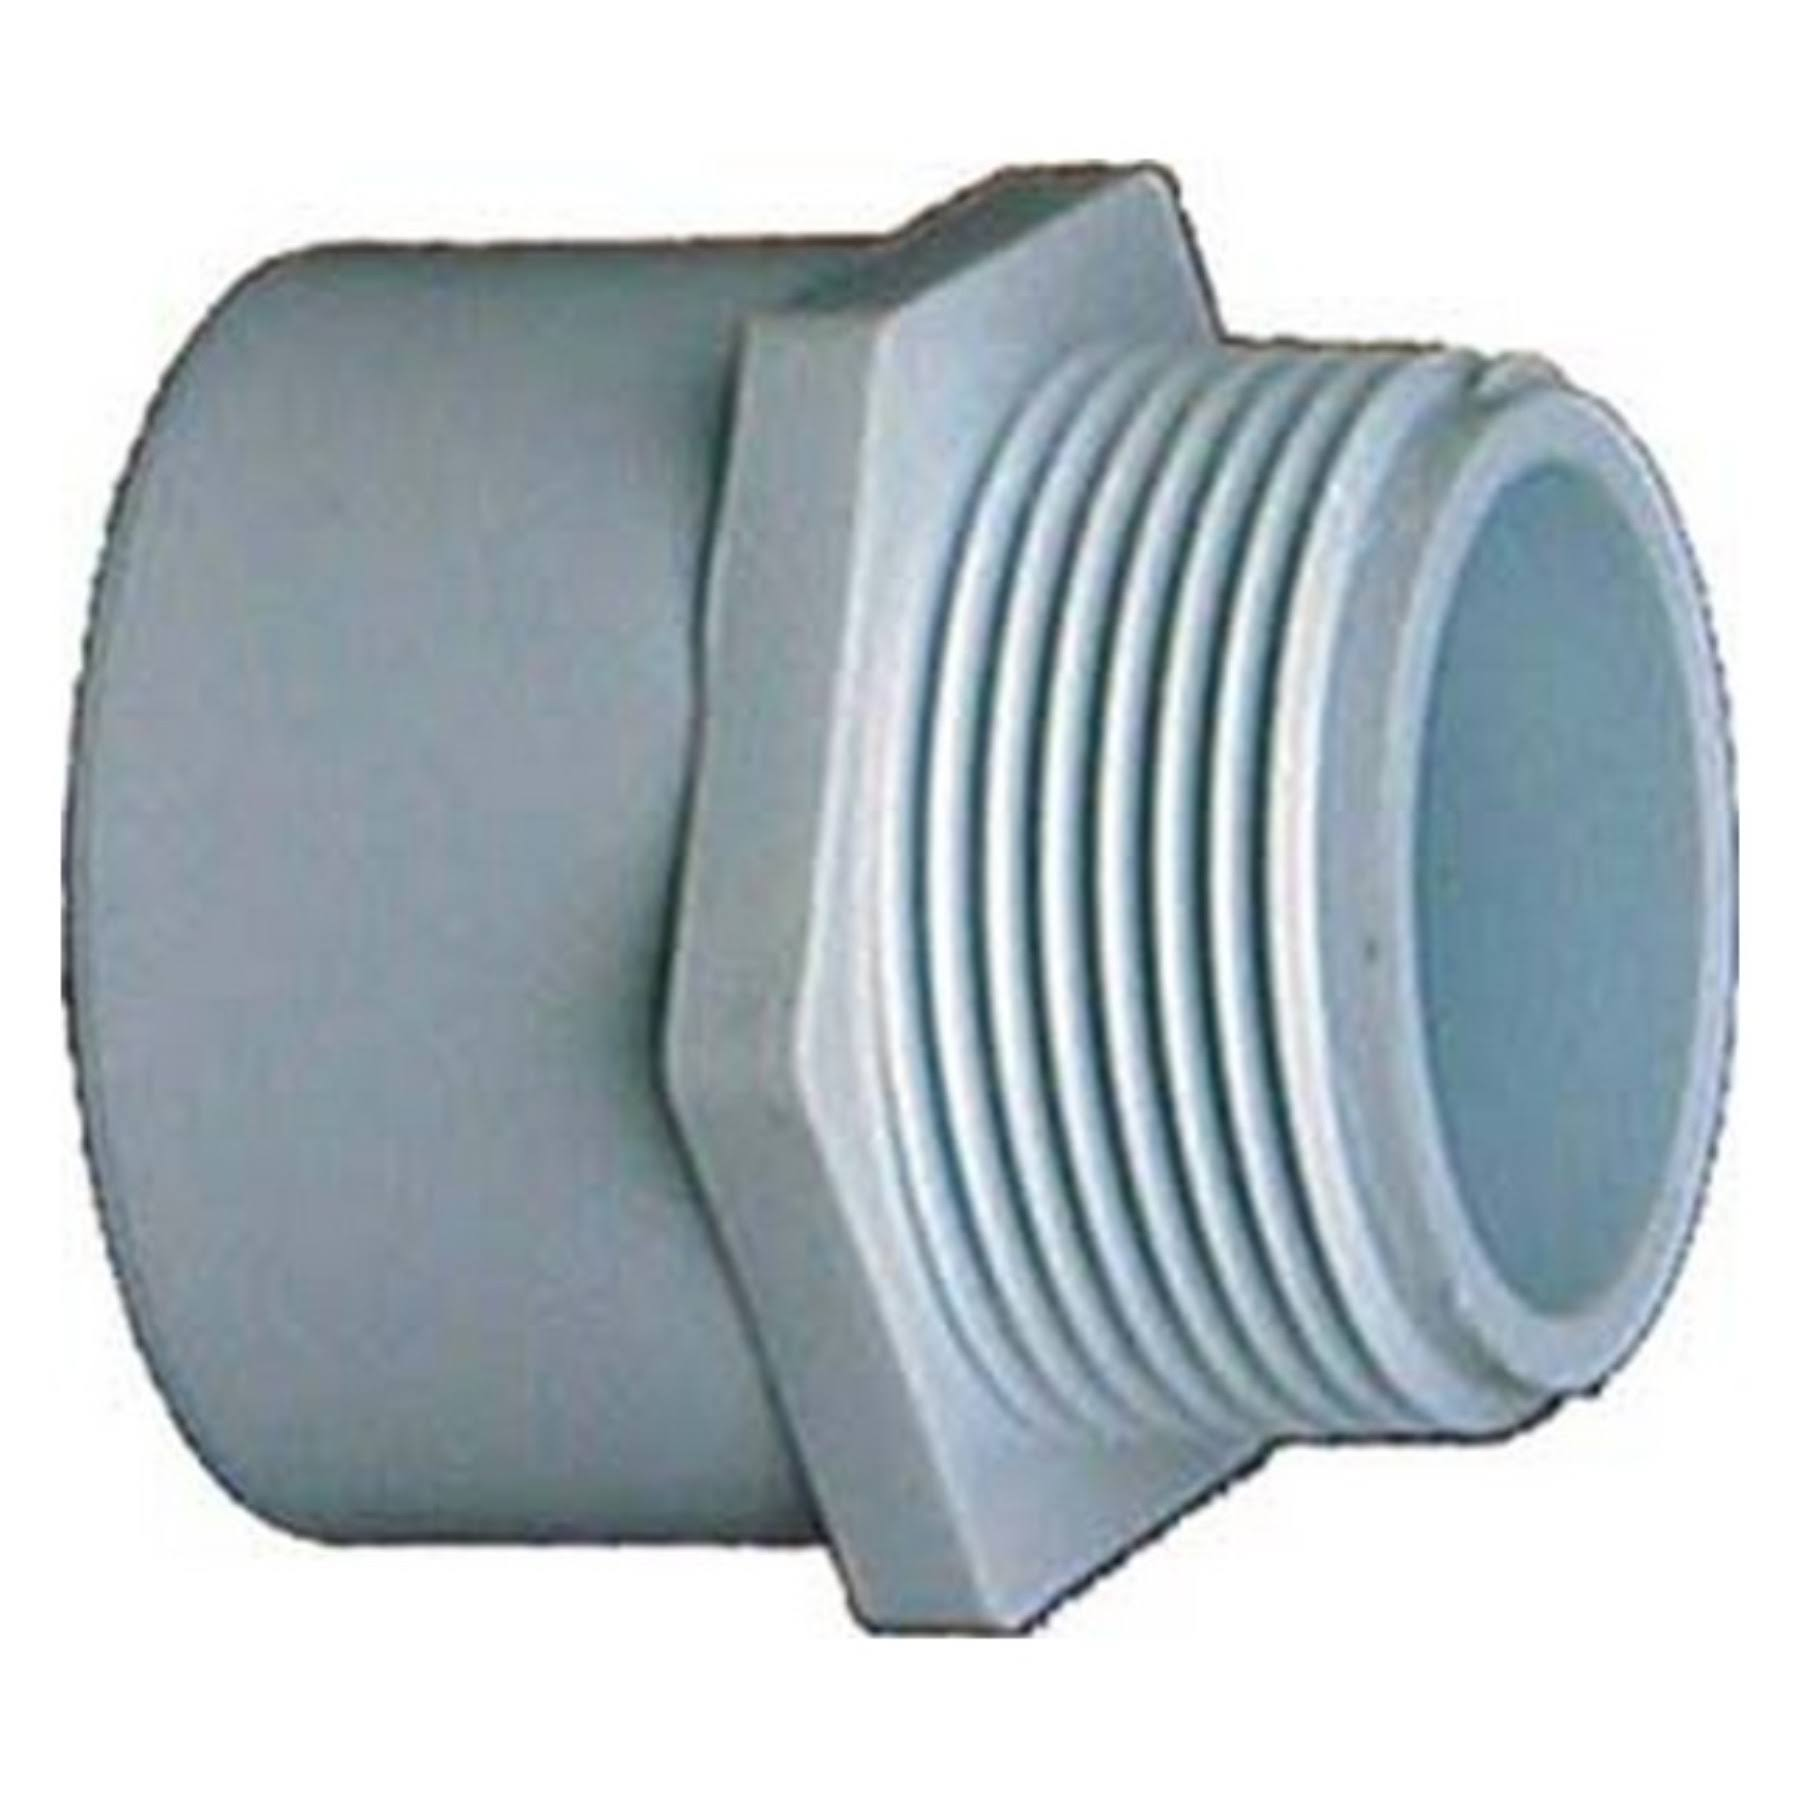 "Genova 30476 PVC Pressure Pipe Fitting Reducing Adapter - White, Male, 3/4"" X 1"""